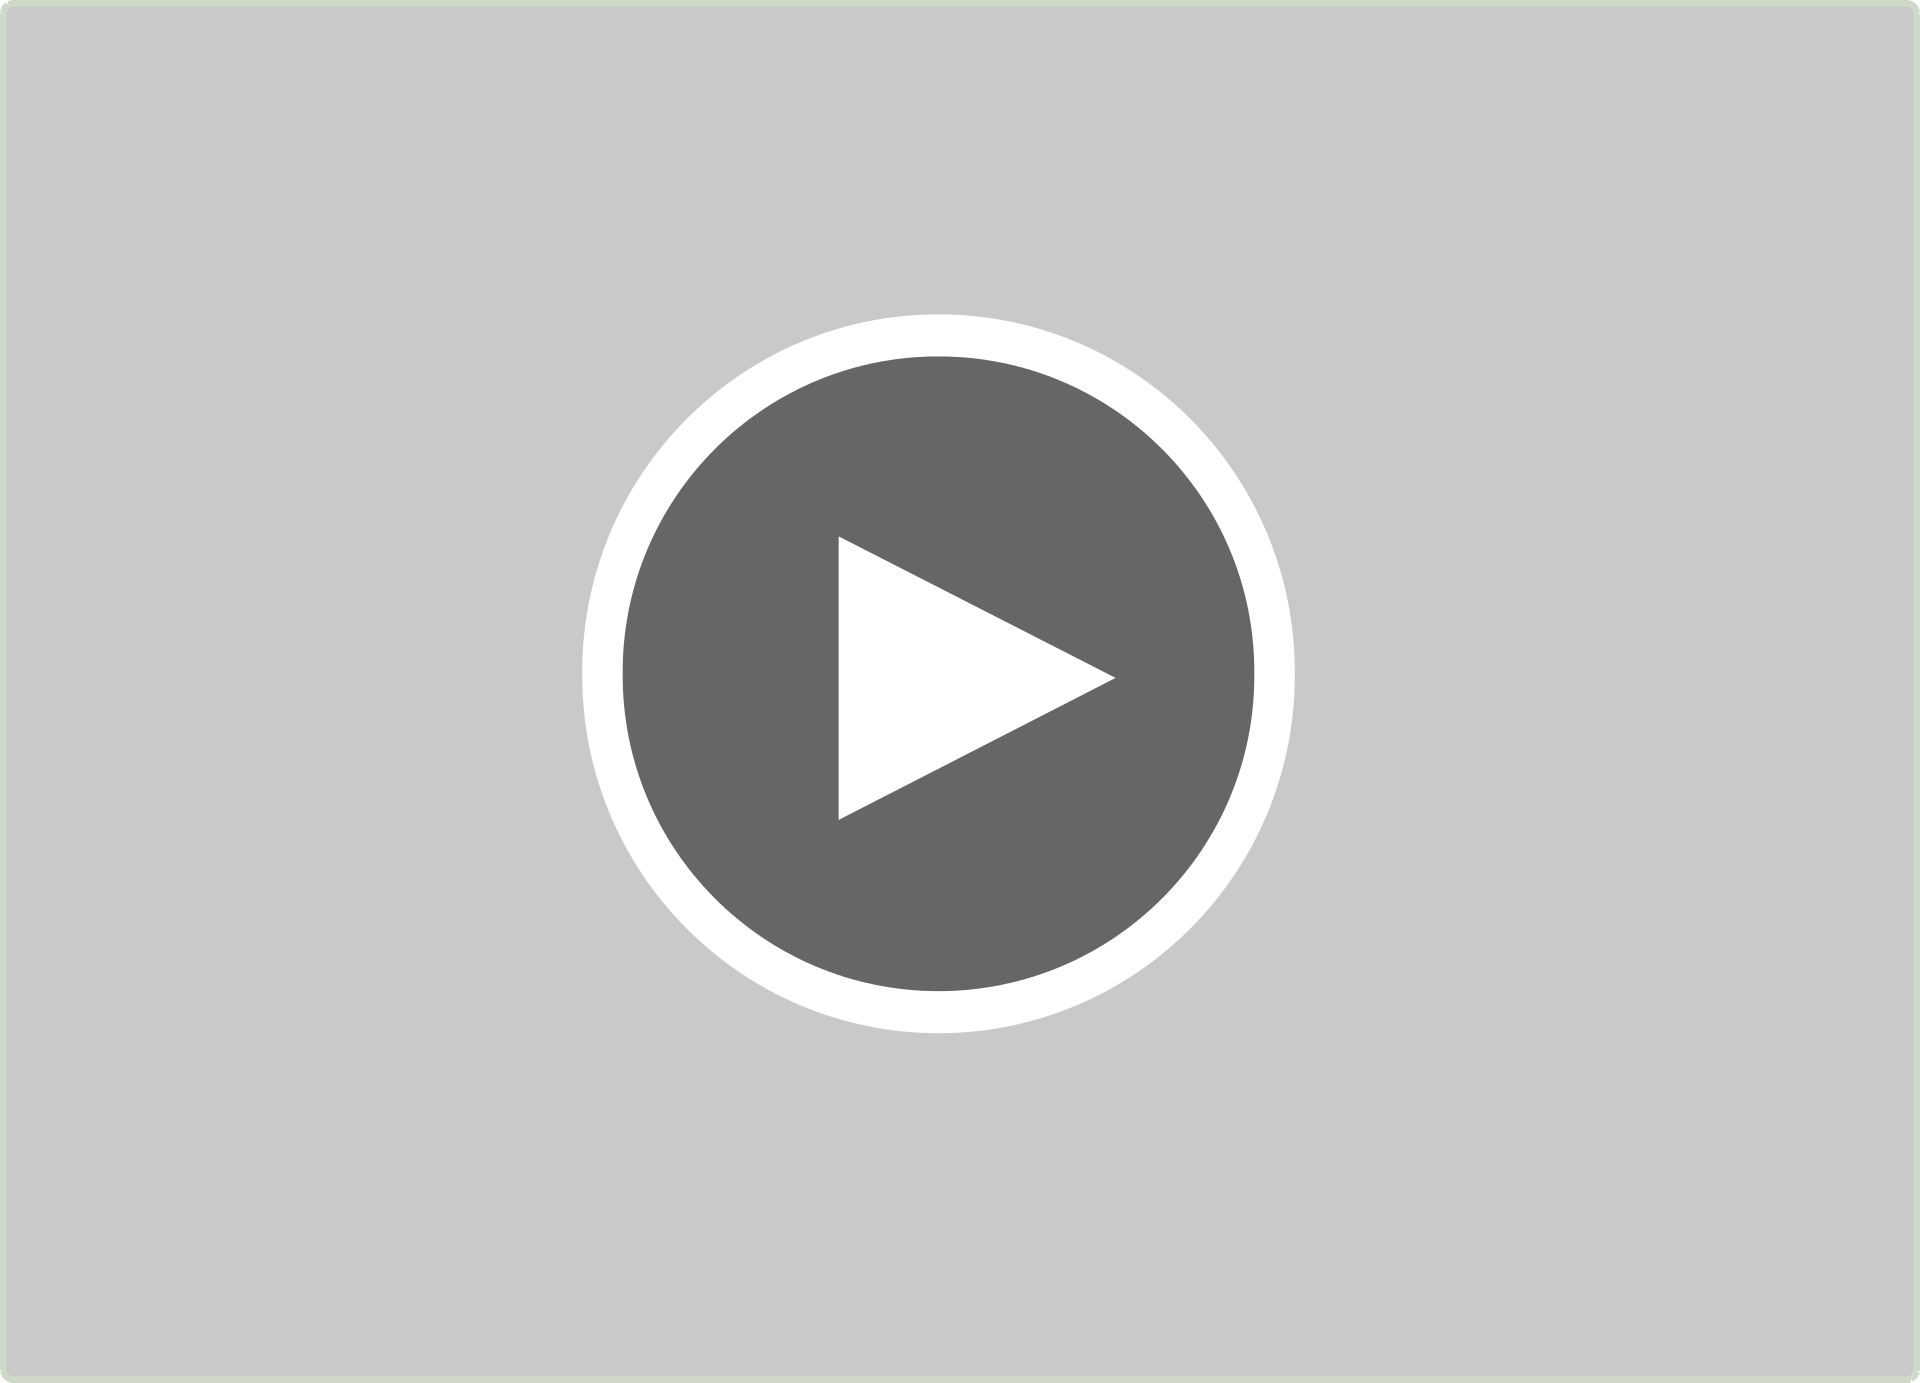 Video play button overlay png. Thumbnail show a groupthought